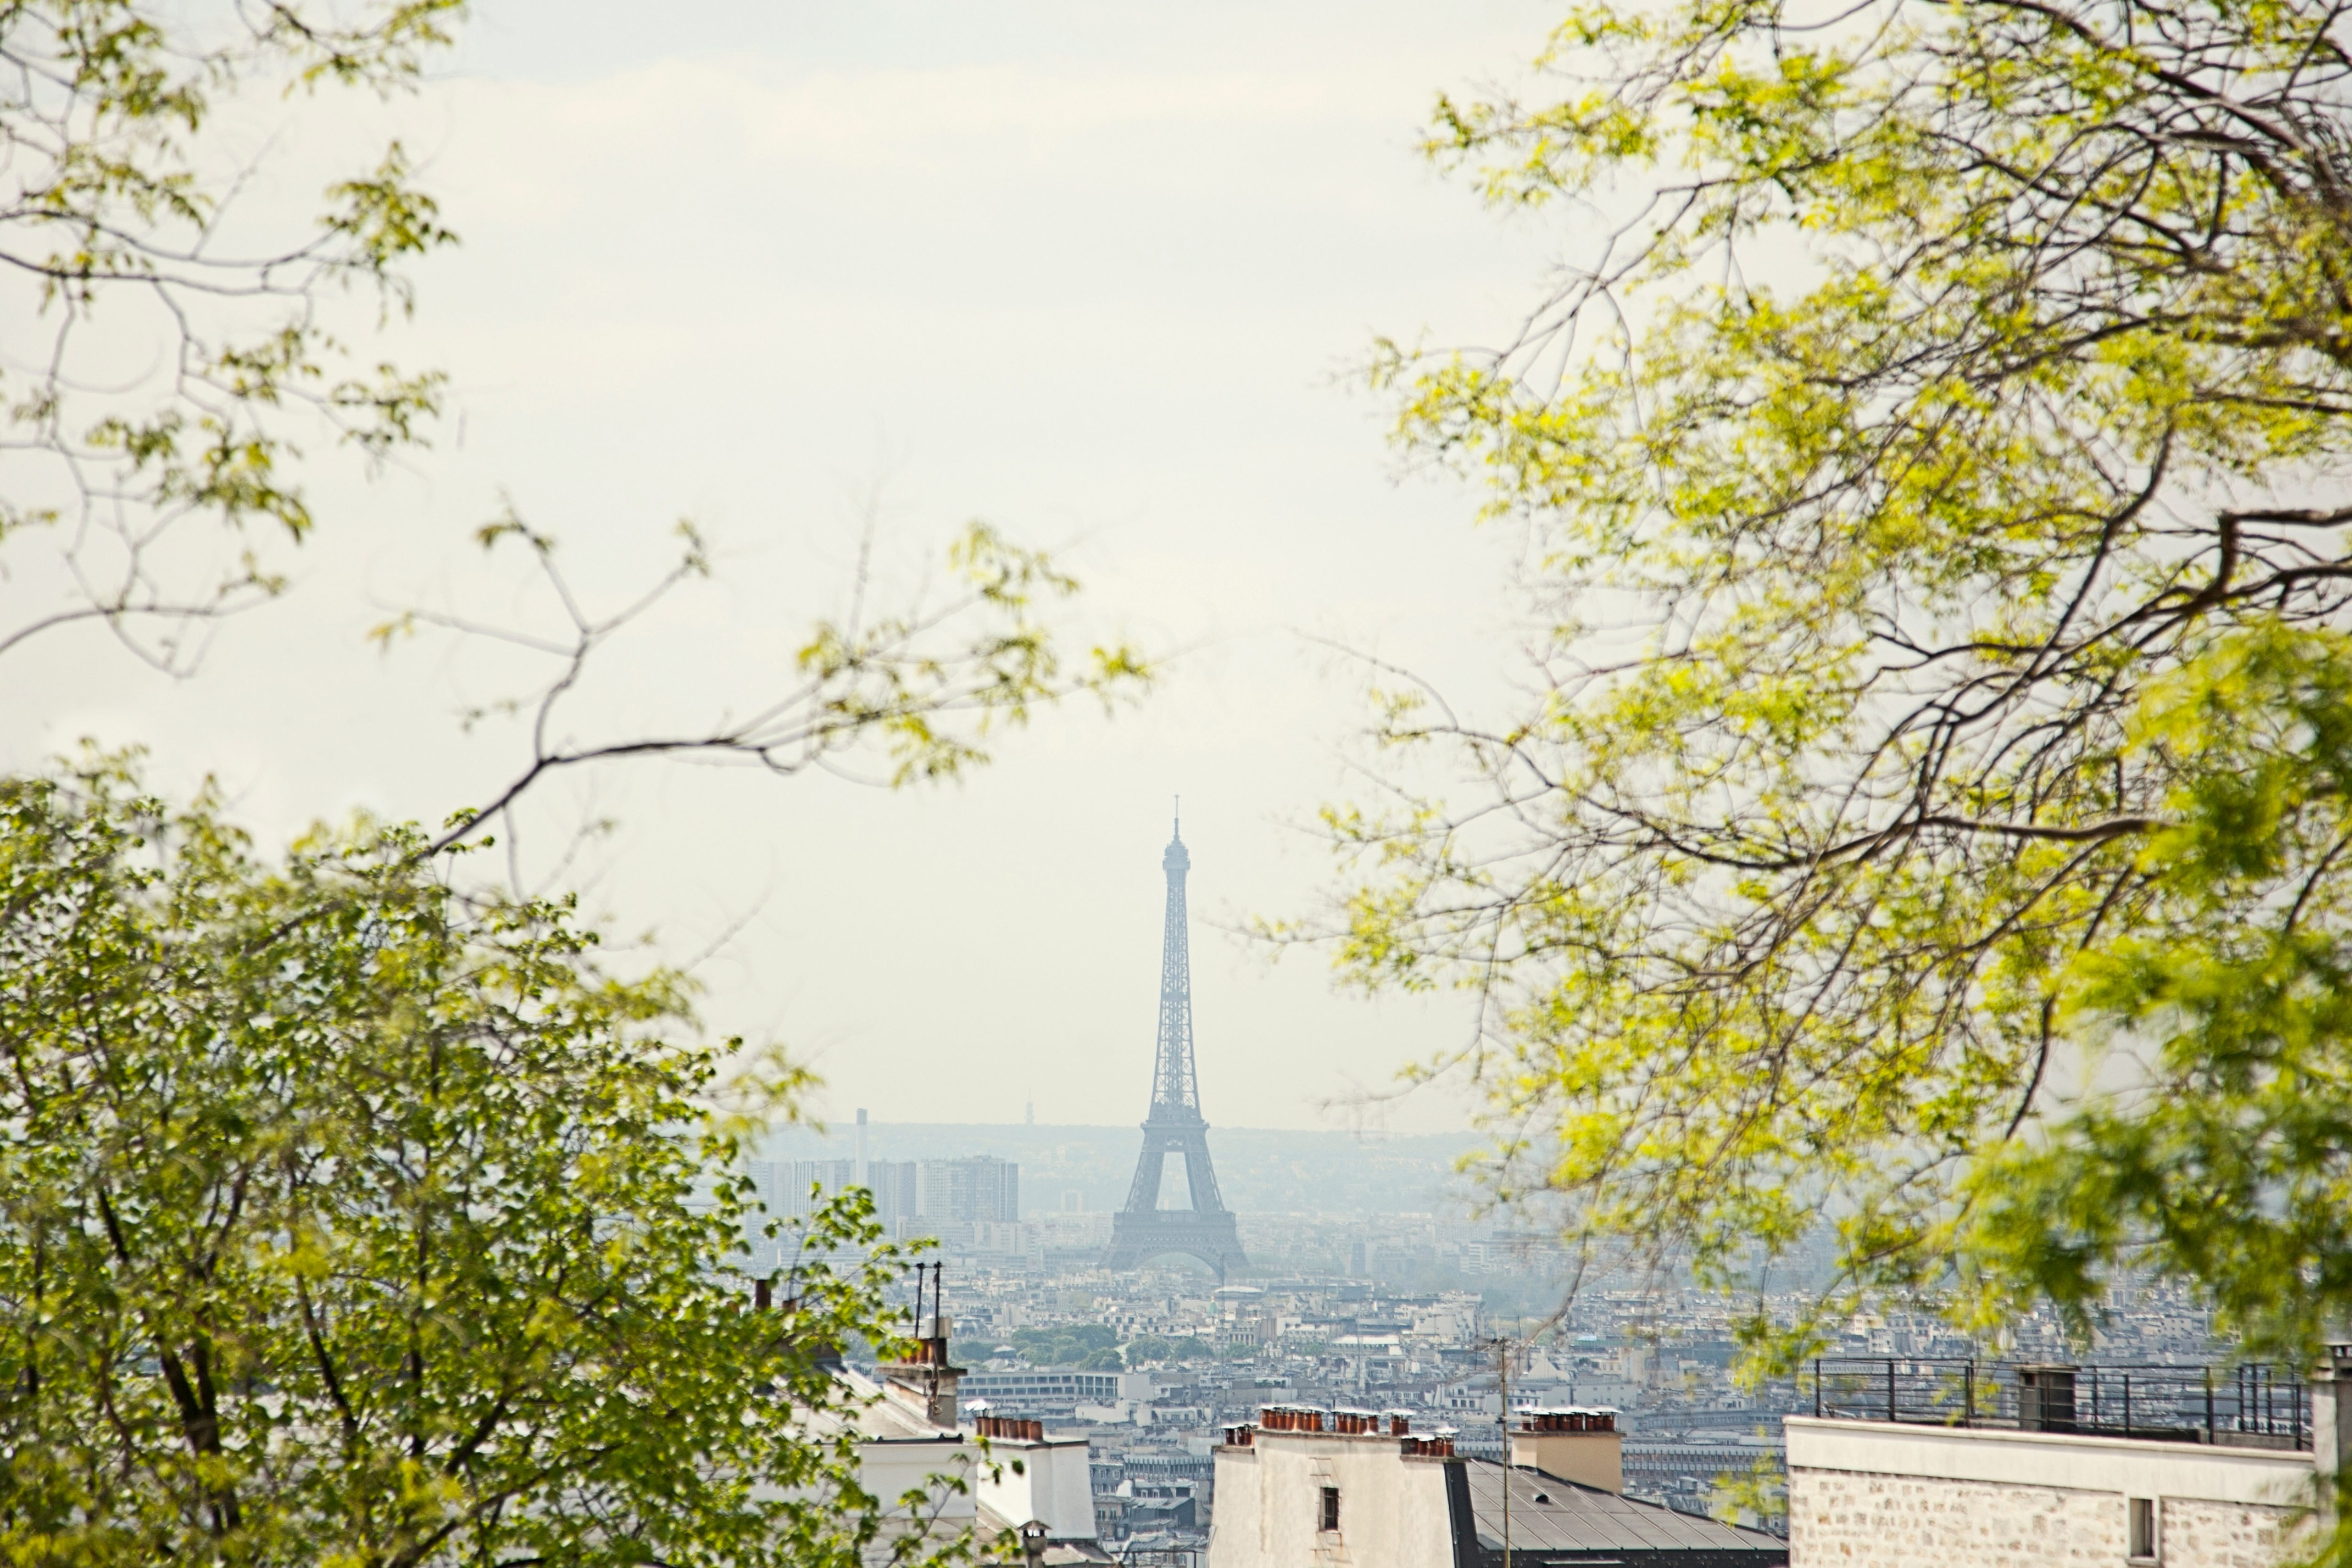 View from afar of the Paris skyline with the Eiffel Tower in the distance